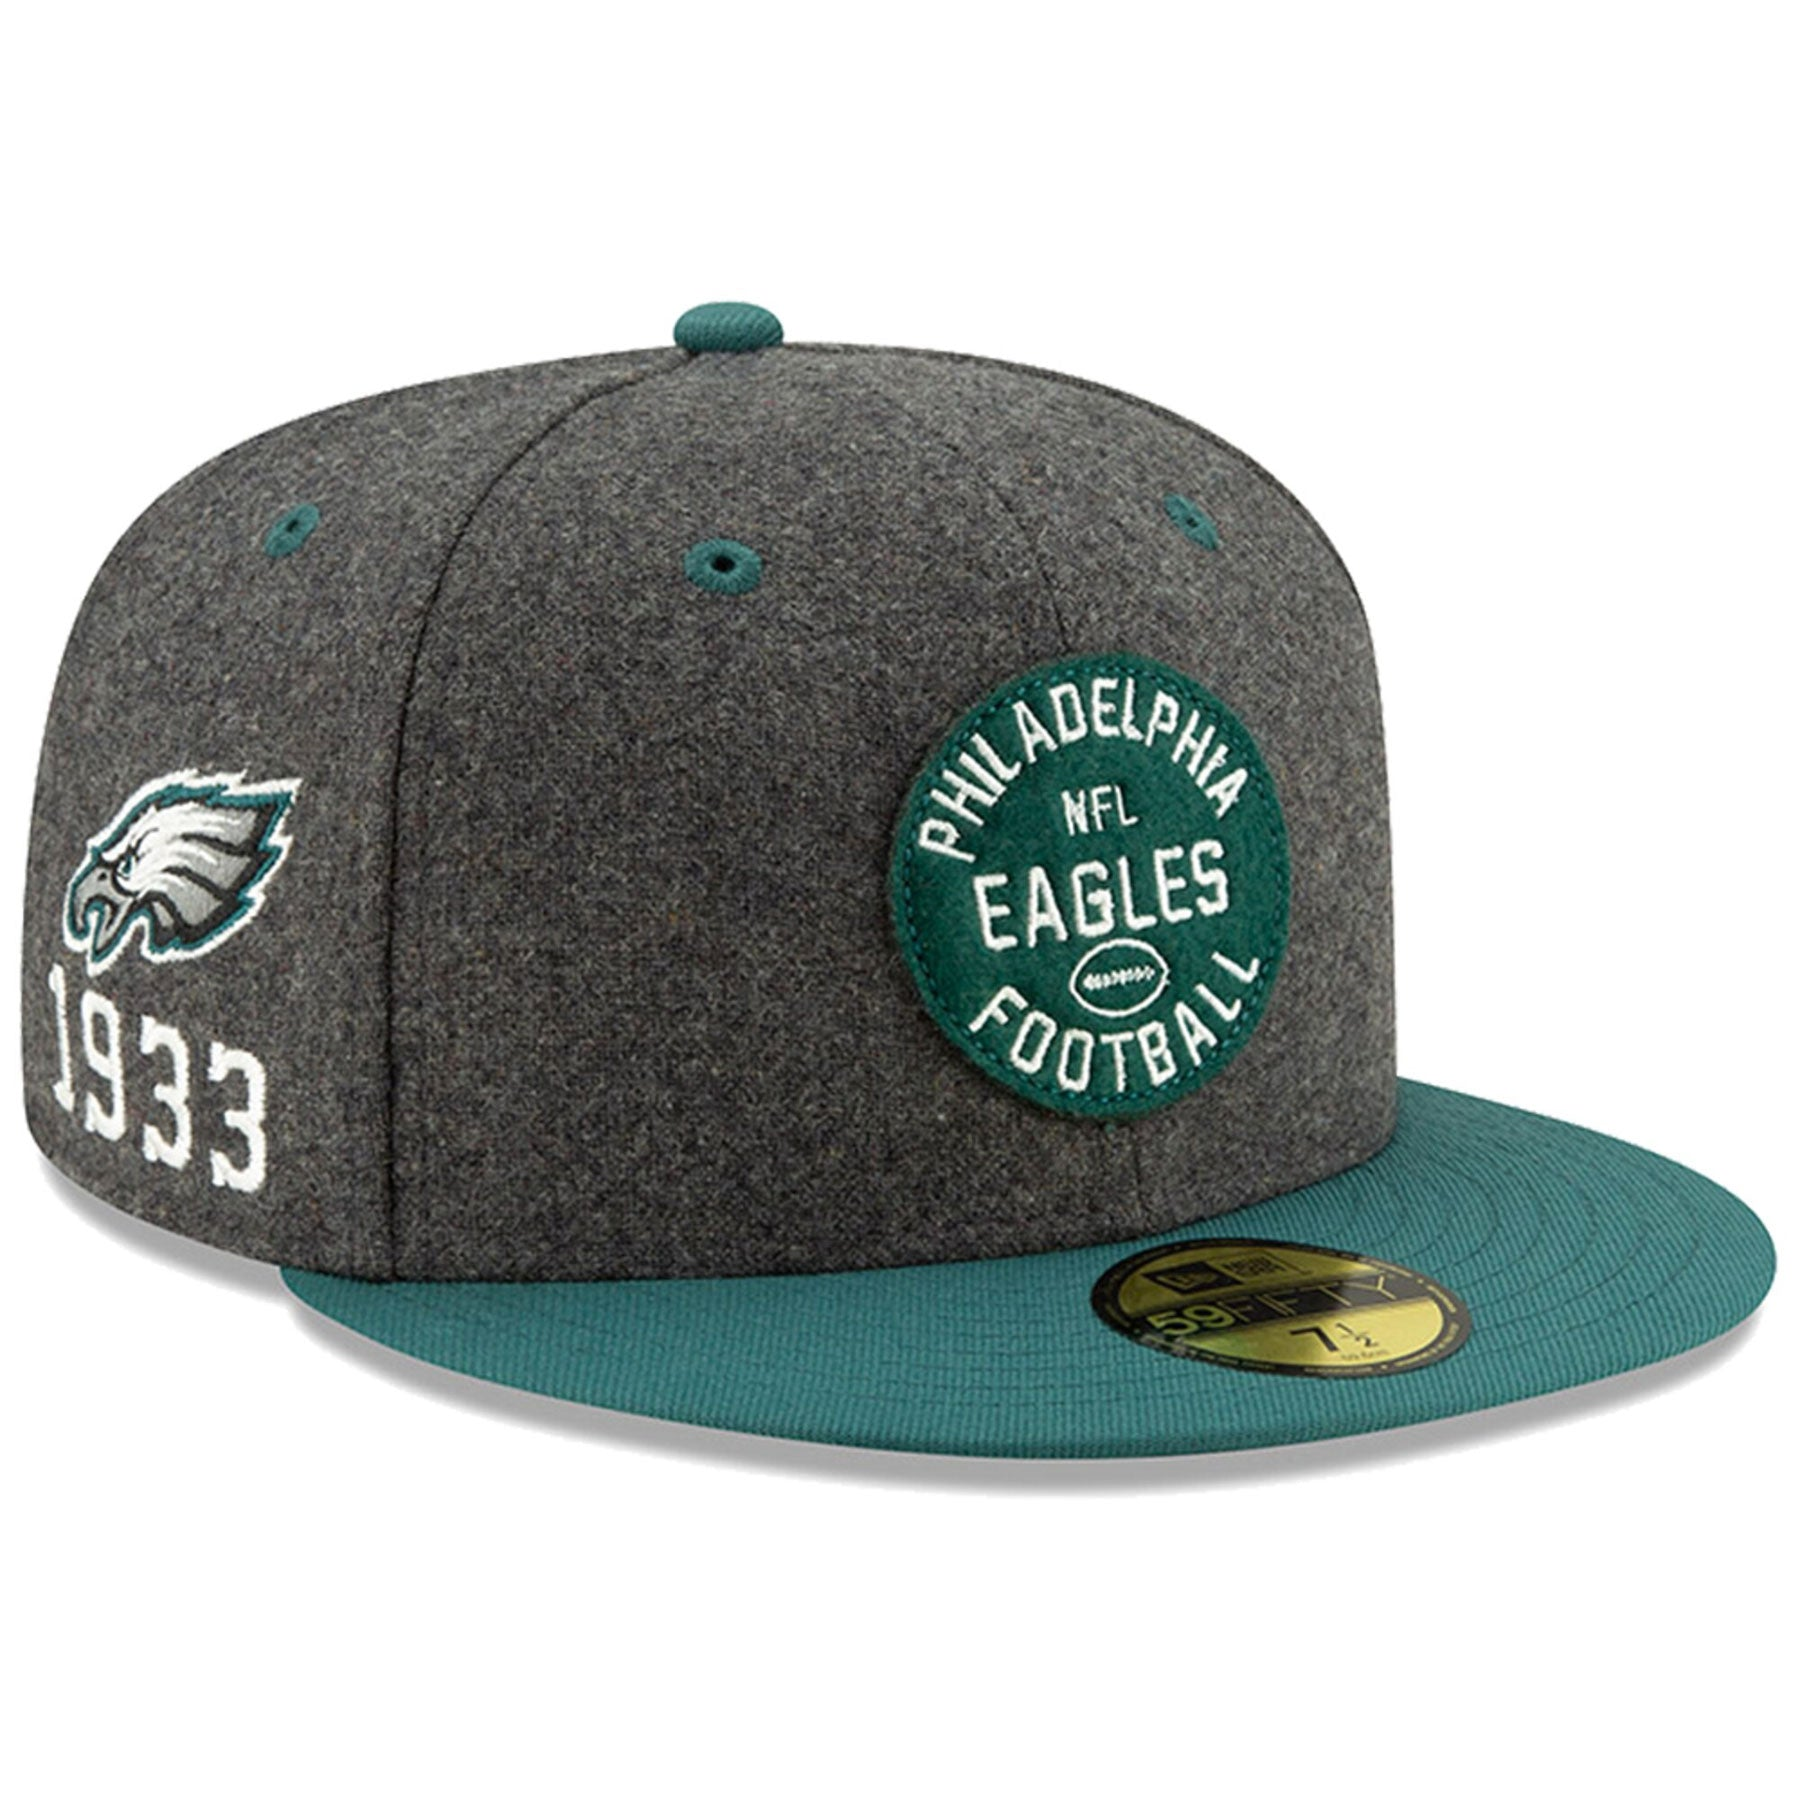 a794ae1cf Philadelphia Eagles New Era 2019 NFL Sideline Home Official 59FIFTY 1930s  Heather Charcoal/Green Fitted Hat